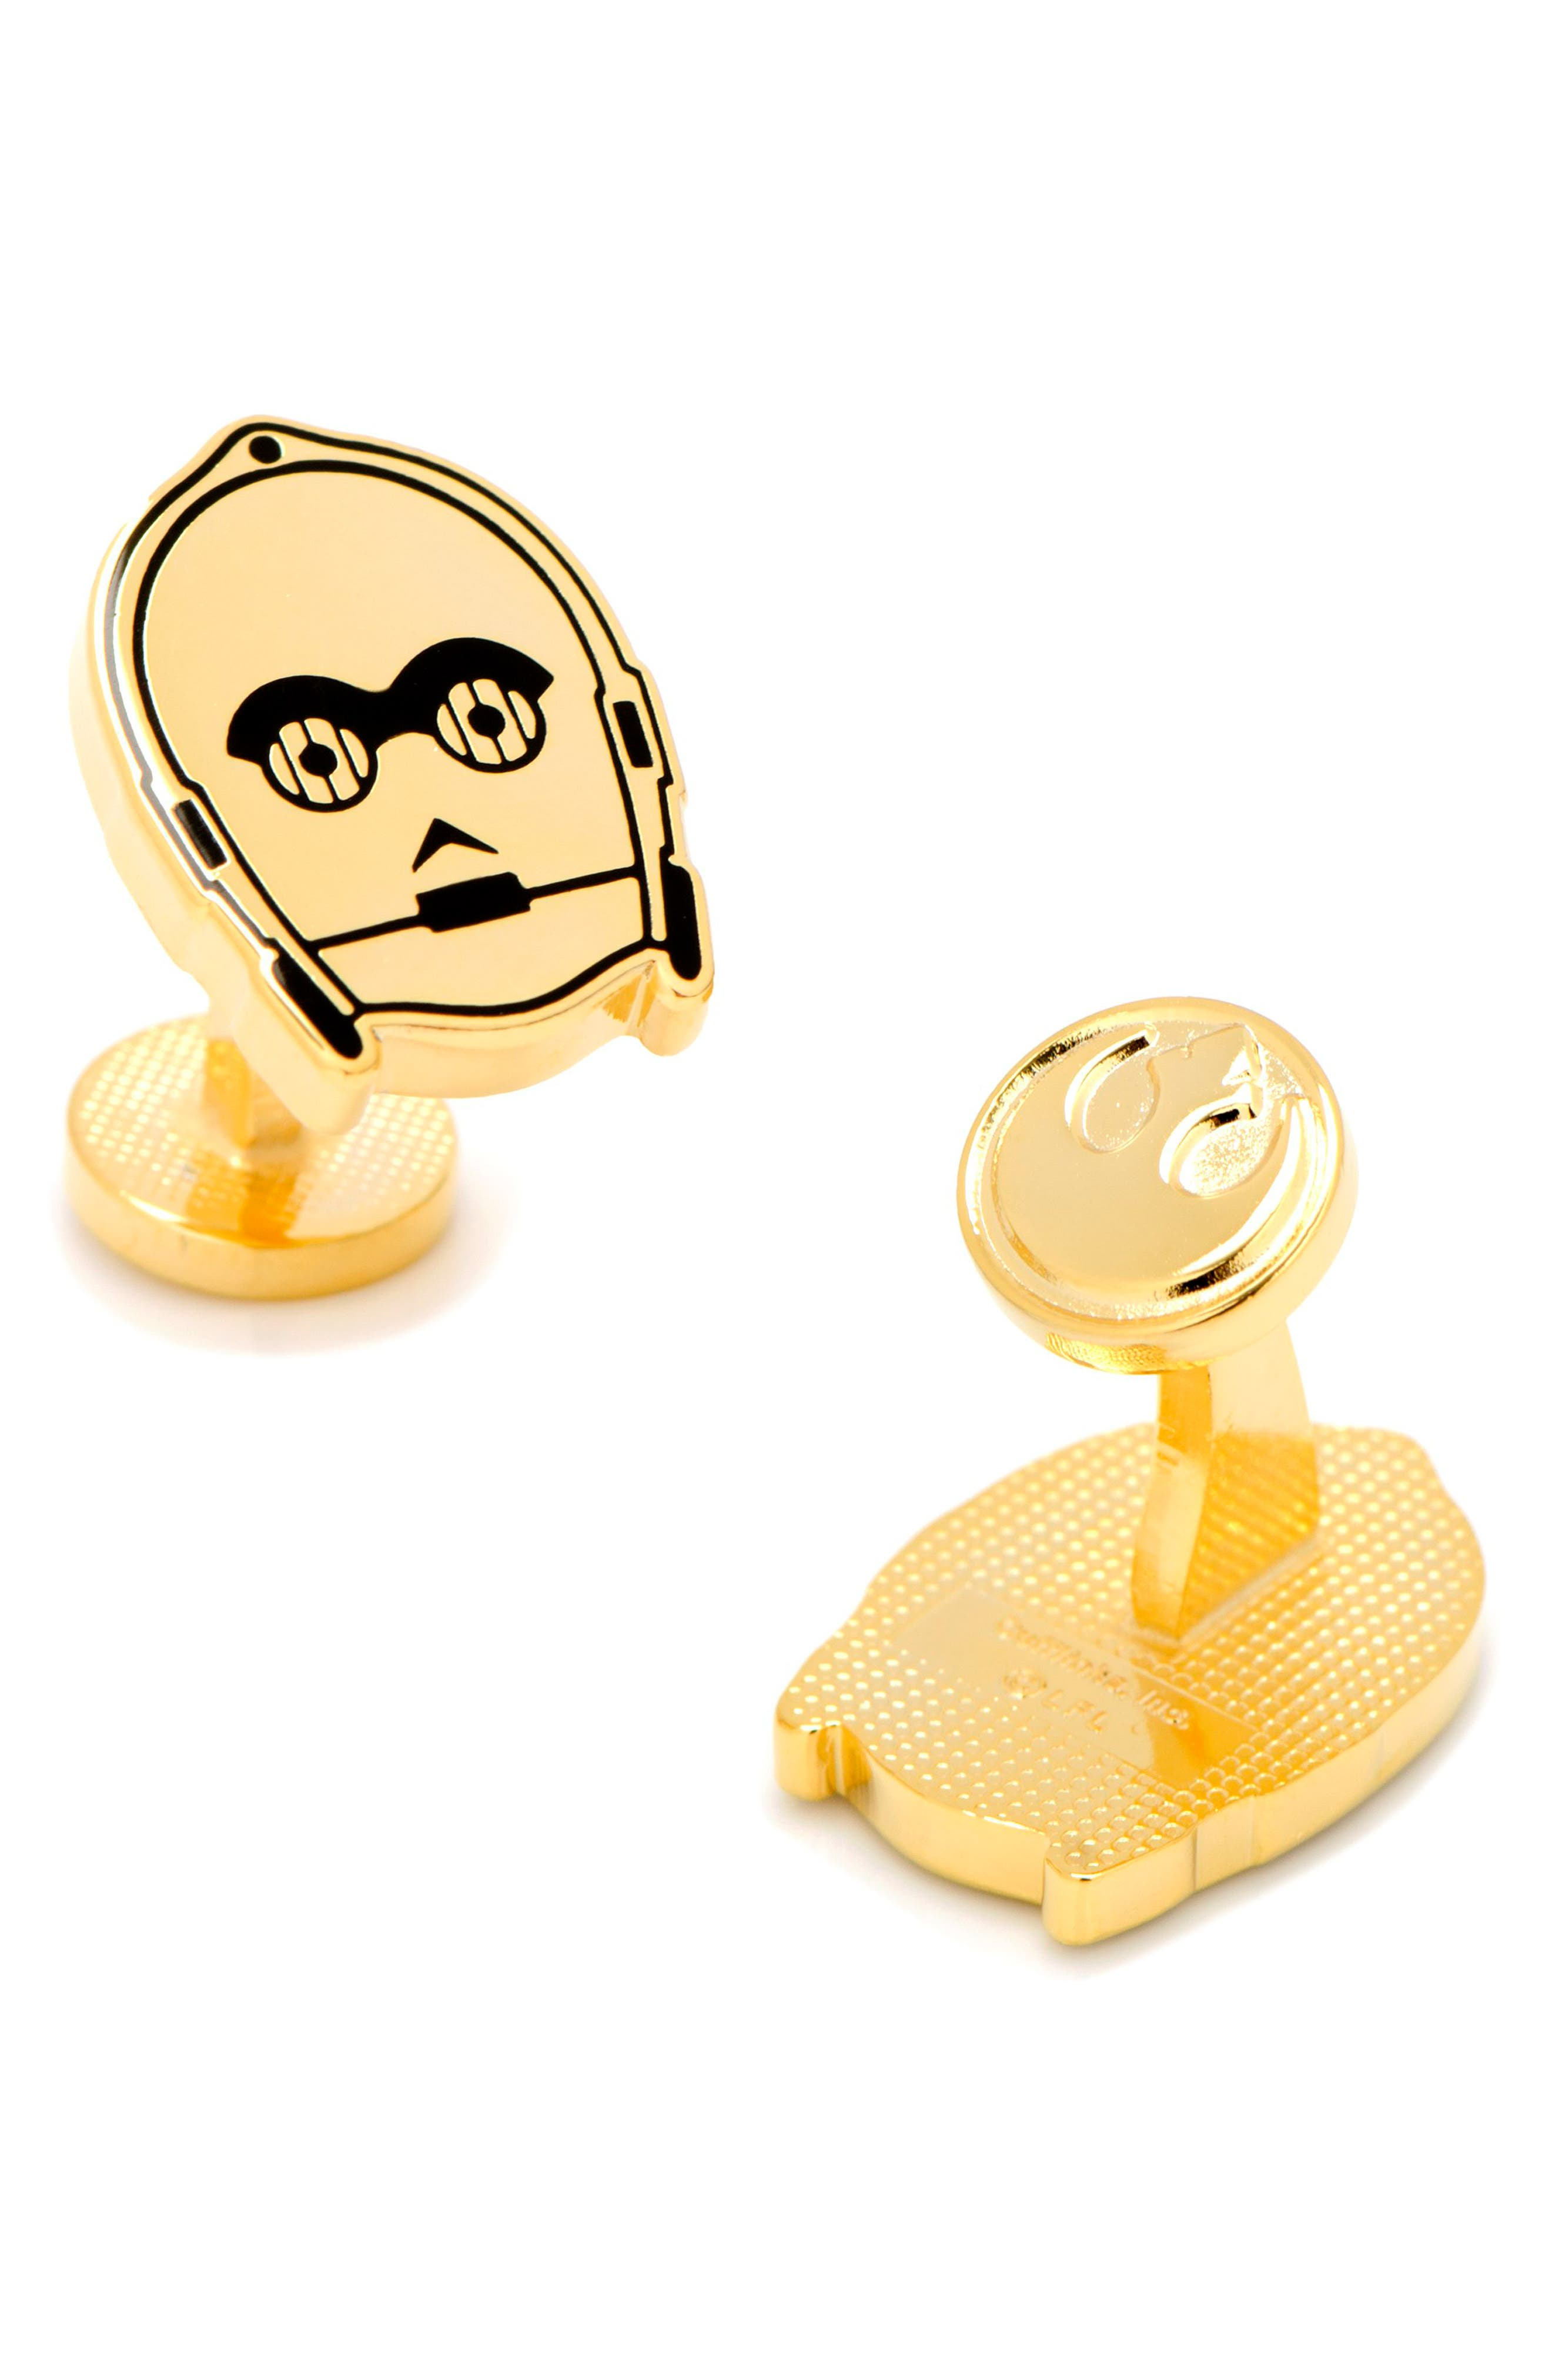 C-3PO Cuff Links,                             Alternate thumbnail 2, color,                             Gold